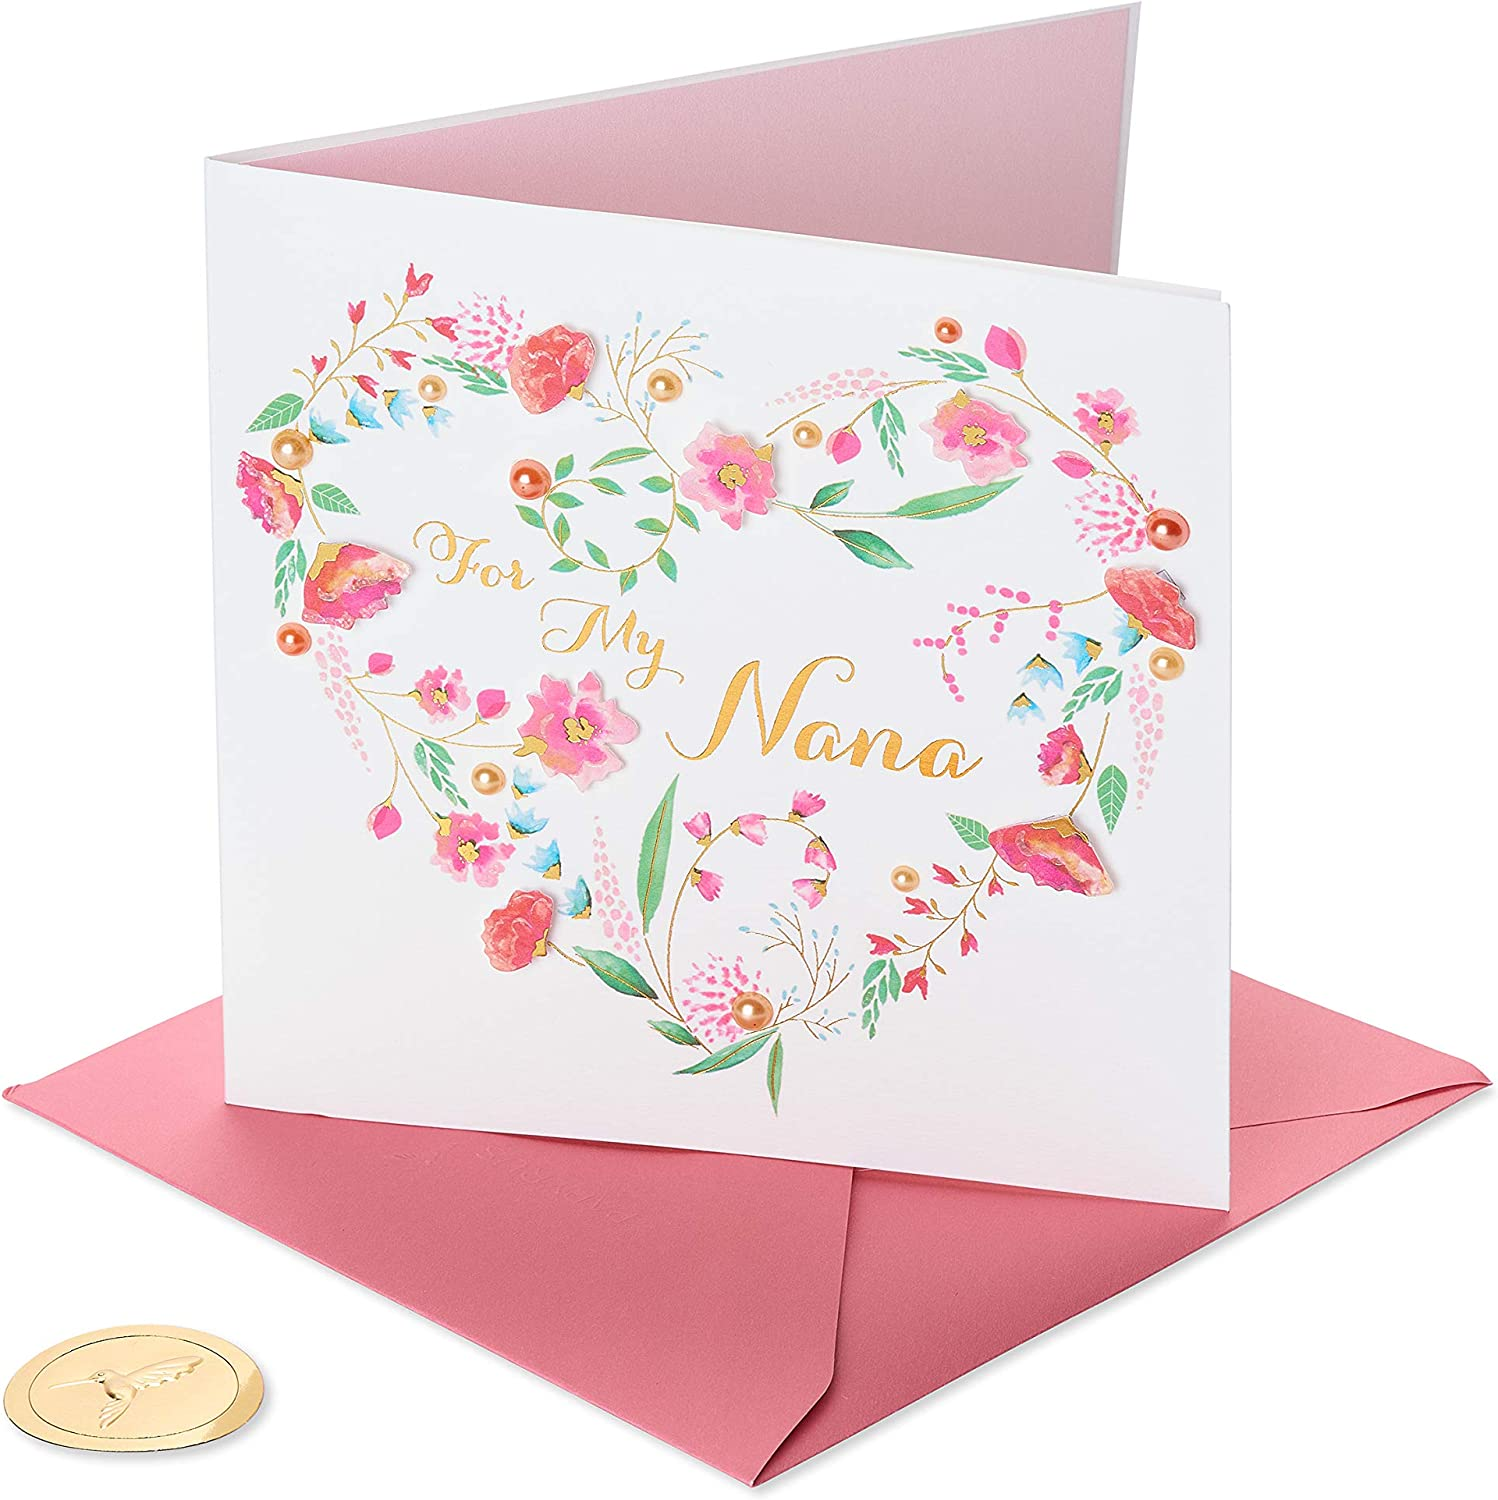 Papyrus Mother's Day Card Wonderful Grandma Nana for Sale safety special price